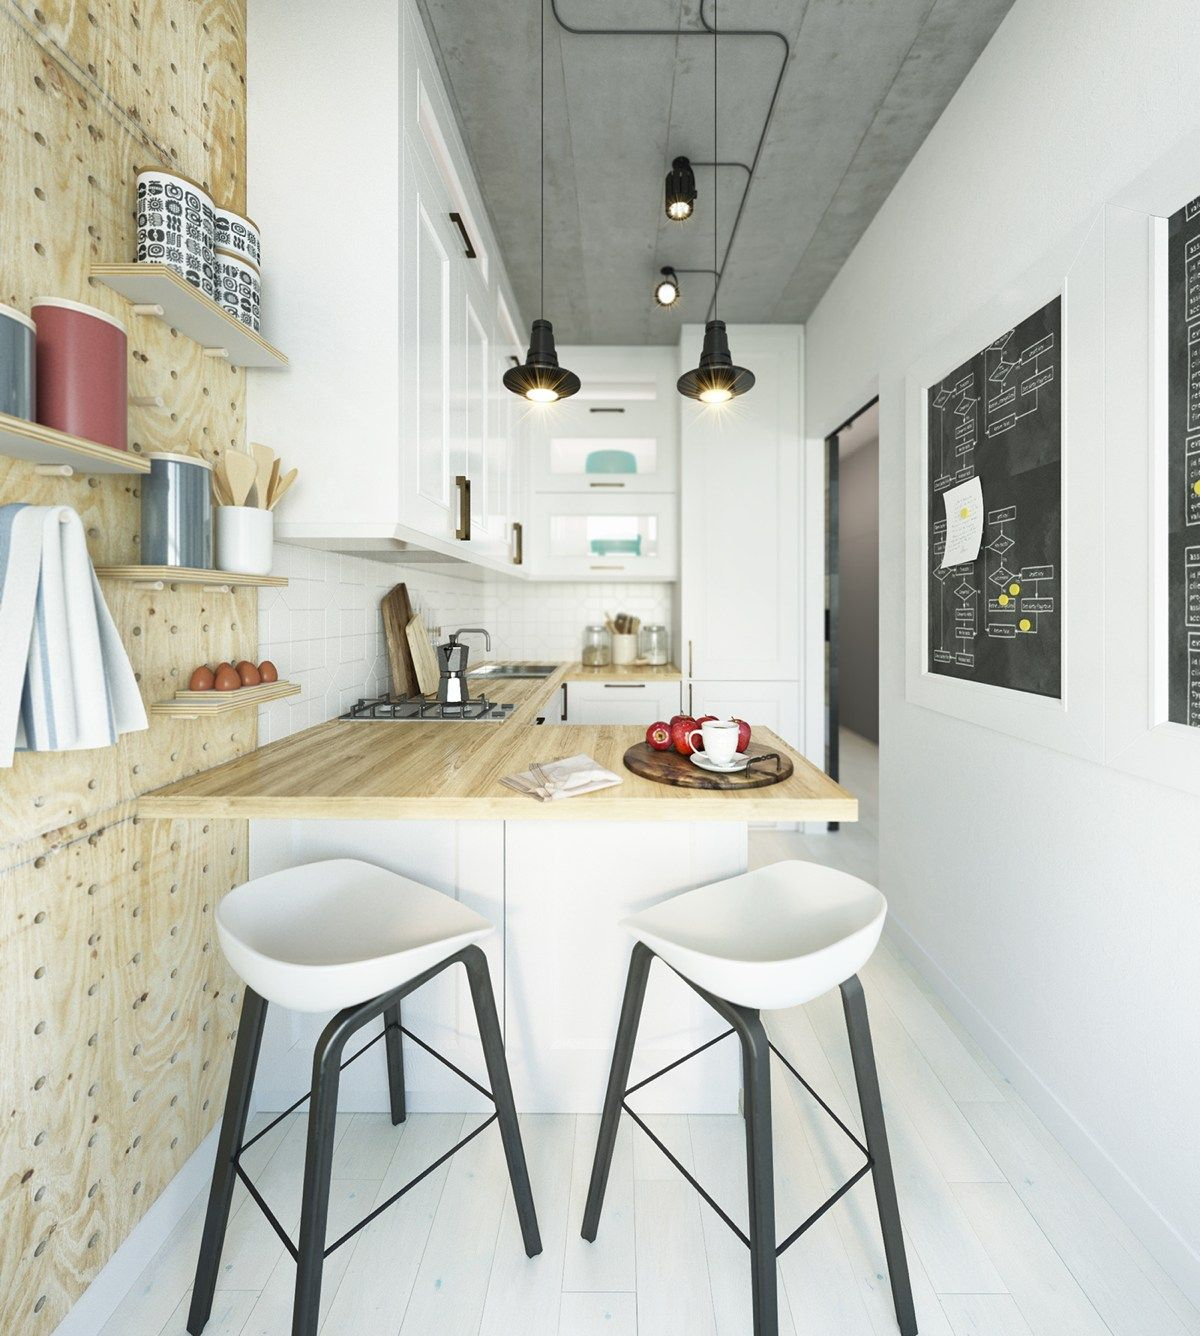 Two Takes On The Same Supersmall Apartment  Kitchen Designs Unique Compact Kitchen Designs For Very Small Spaces Design Inspiration